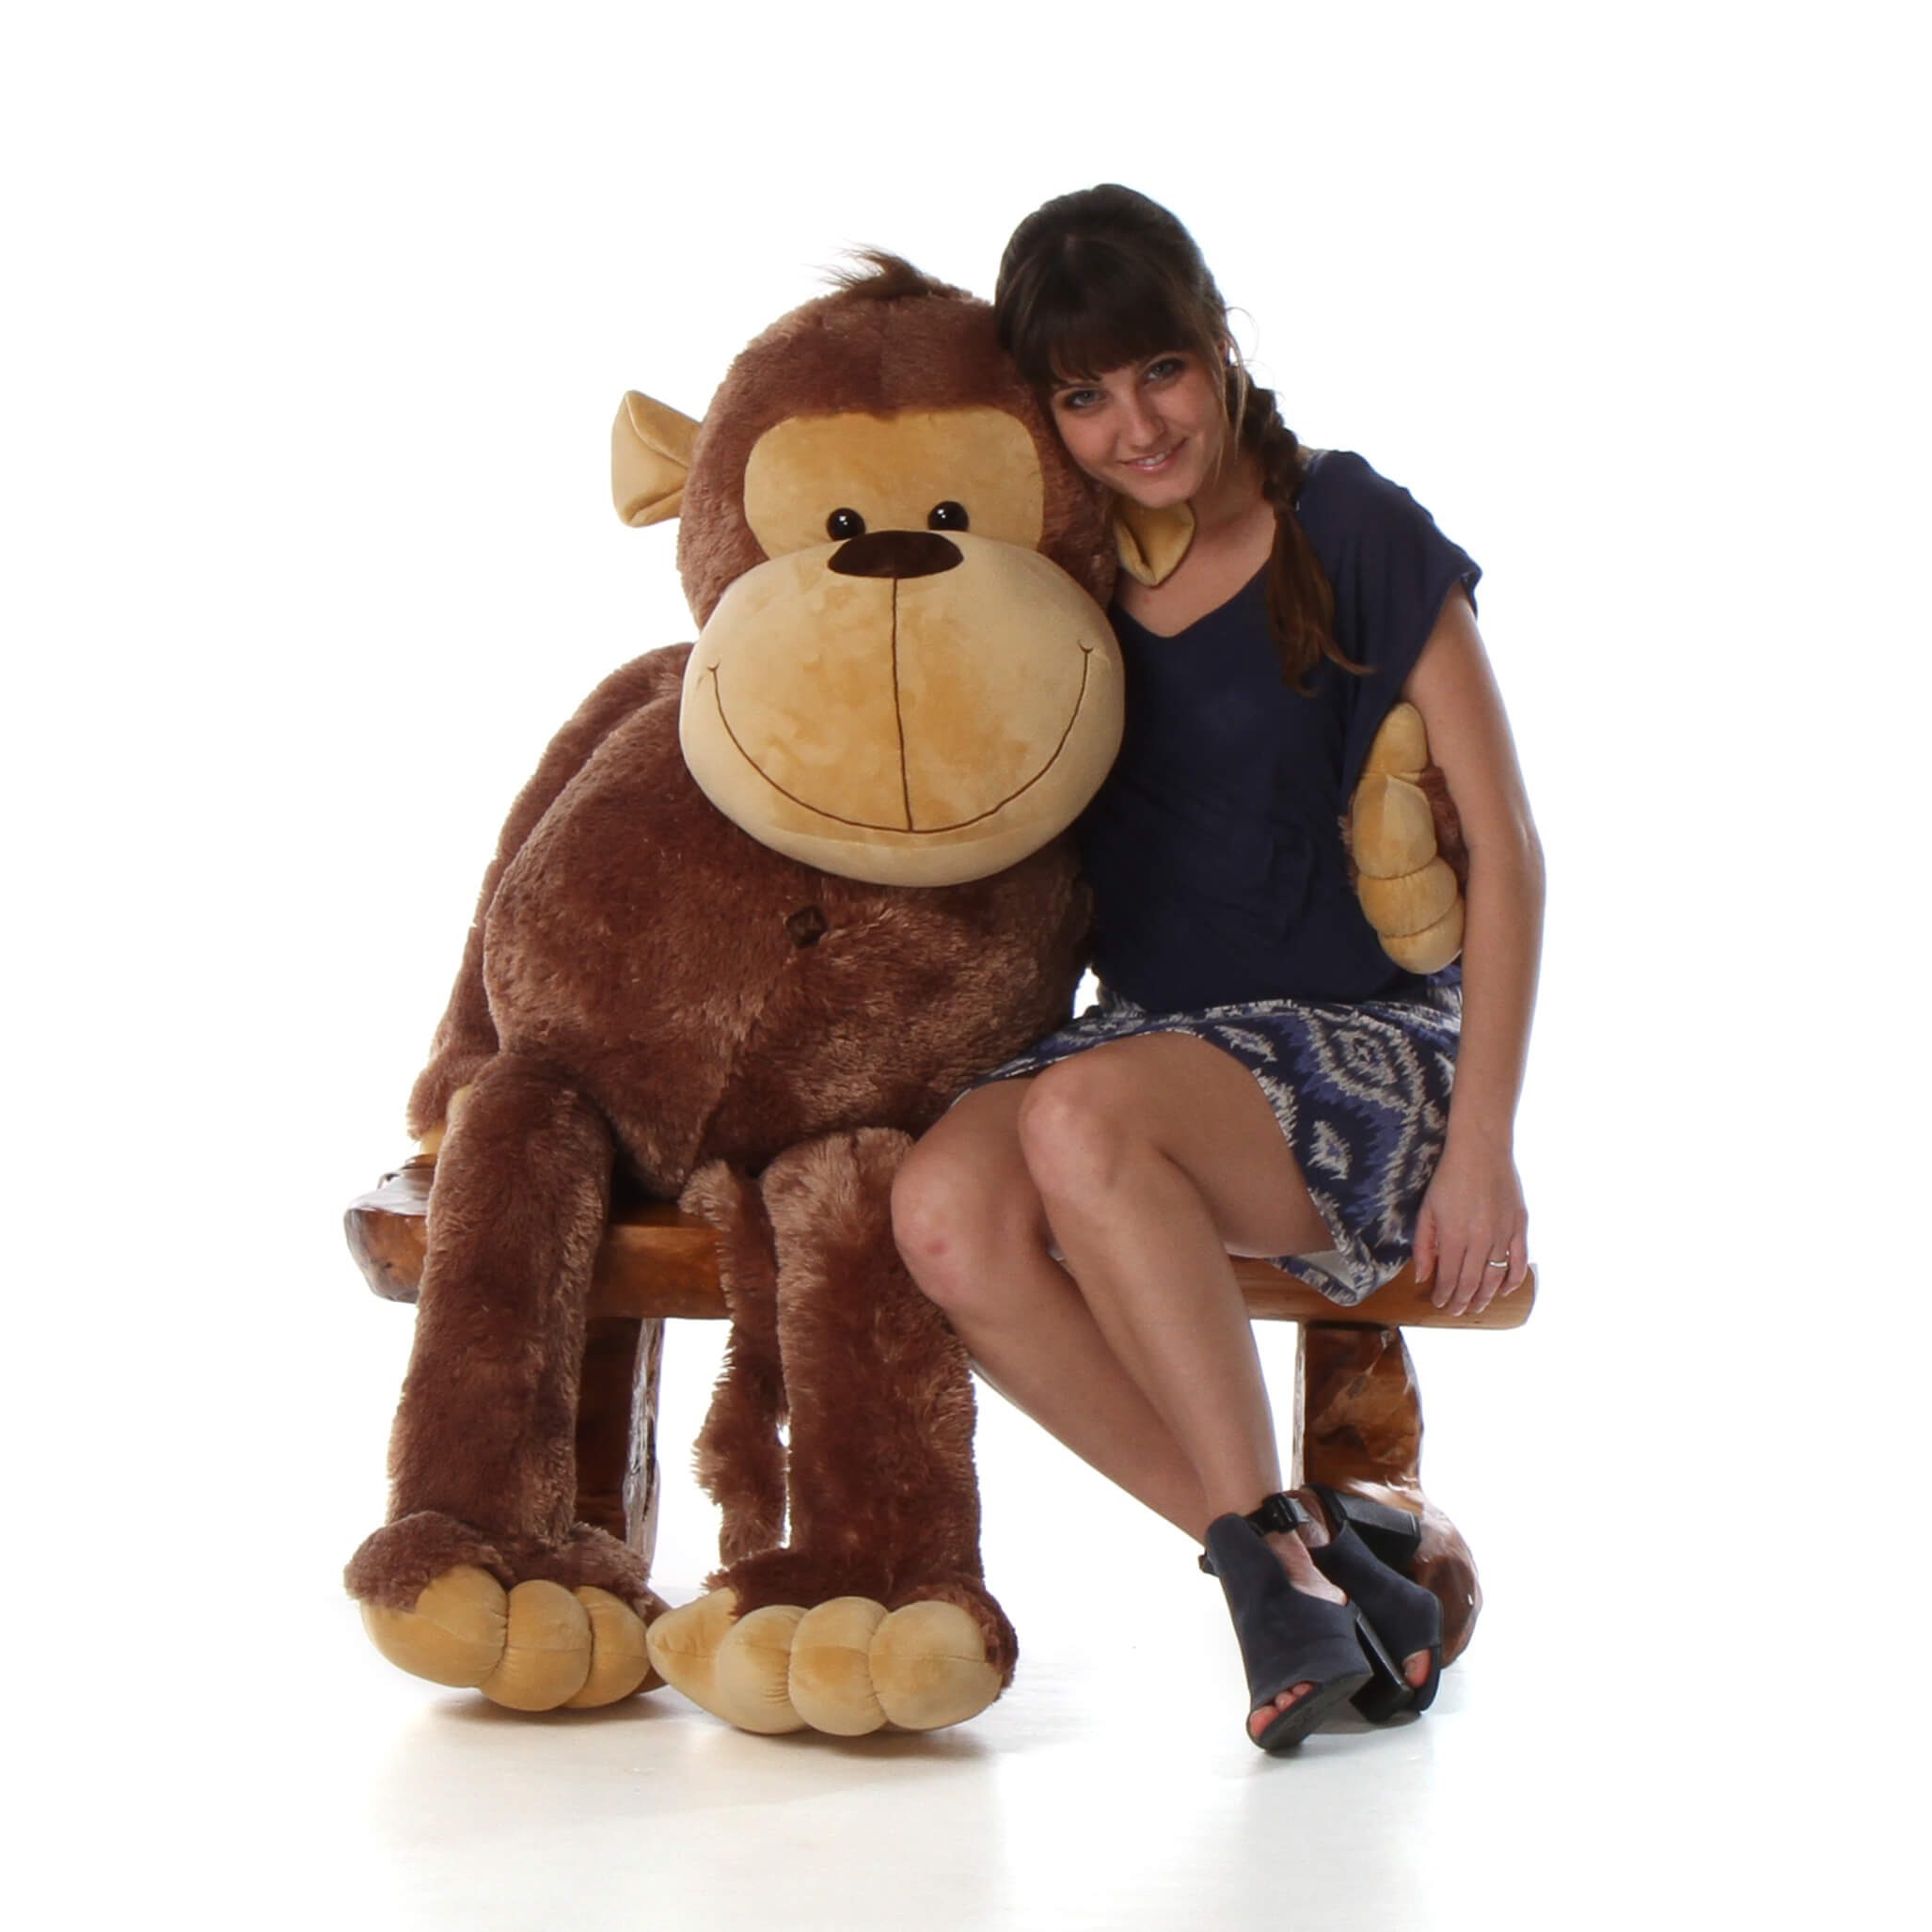 5ft Life Size Giant Stuffed Monkey Big Daddy from Giant Teddy brand ...